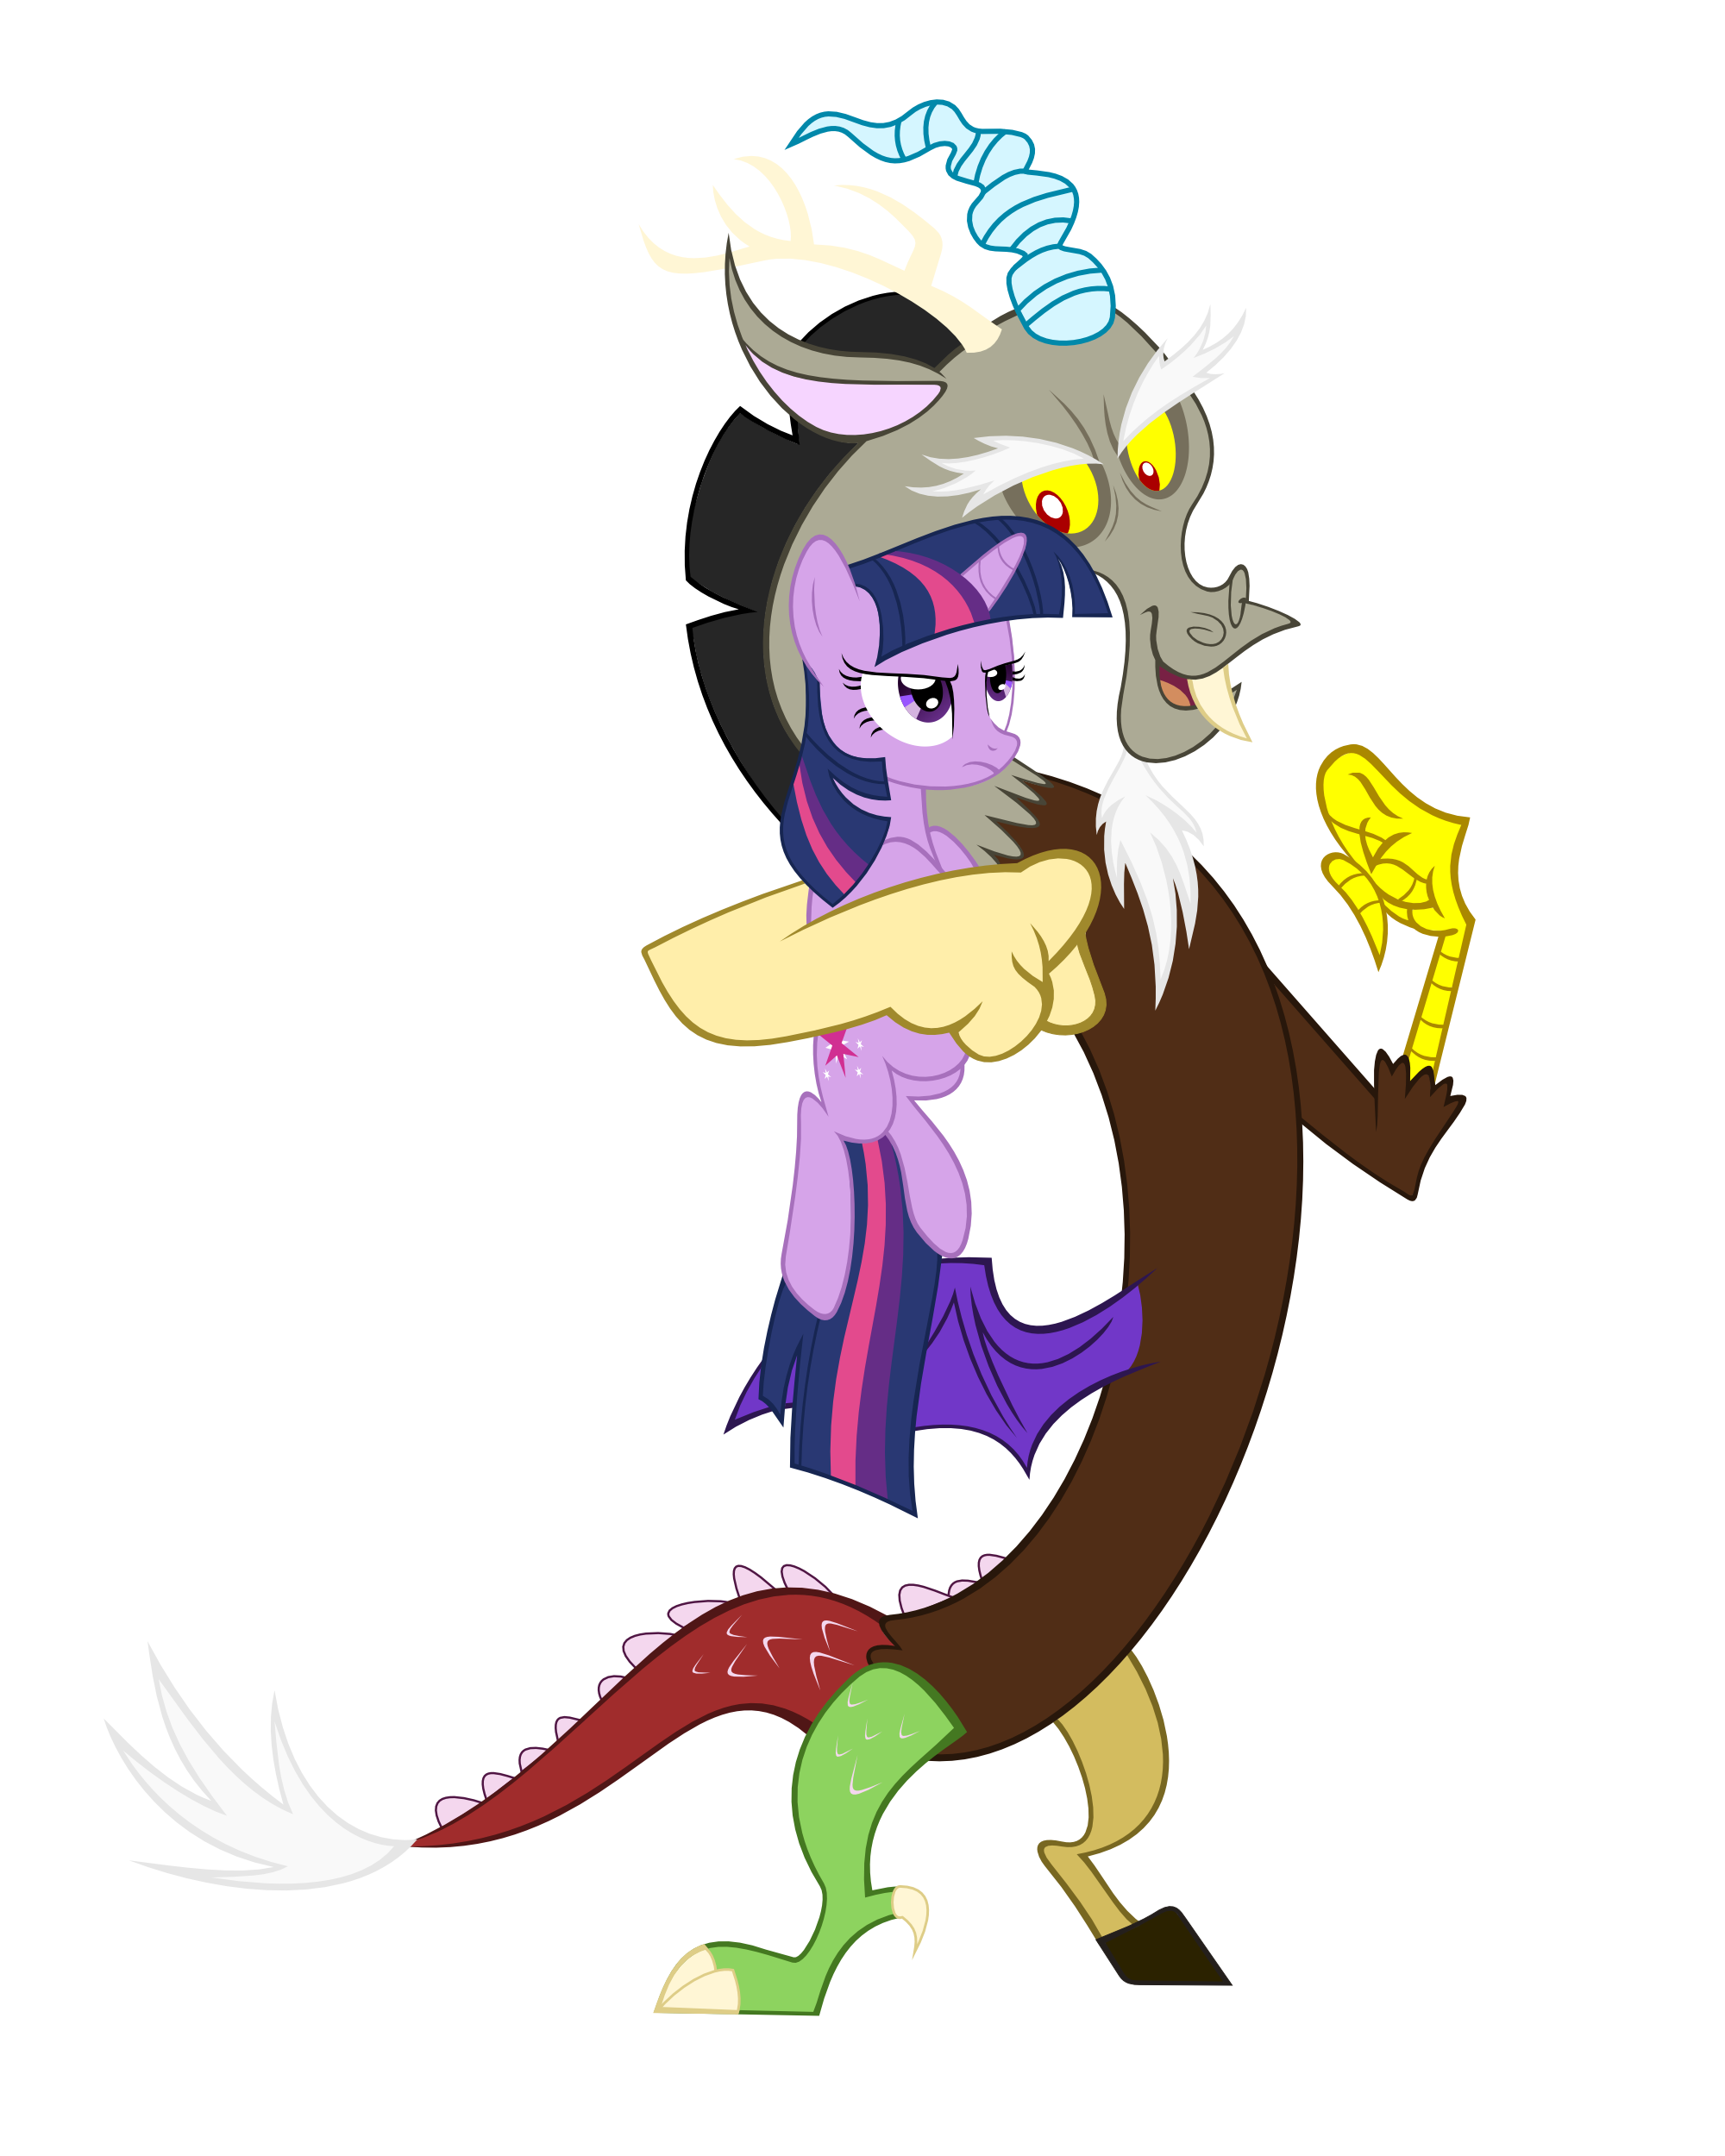 Discord/Twilight Sparkle | My Little Pony Friendship is